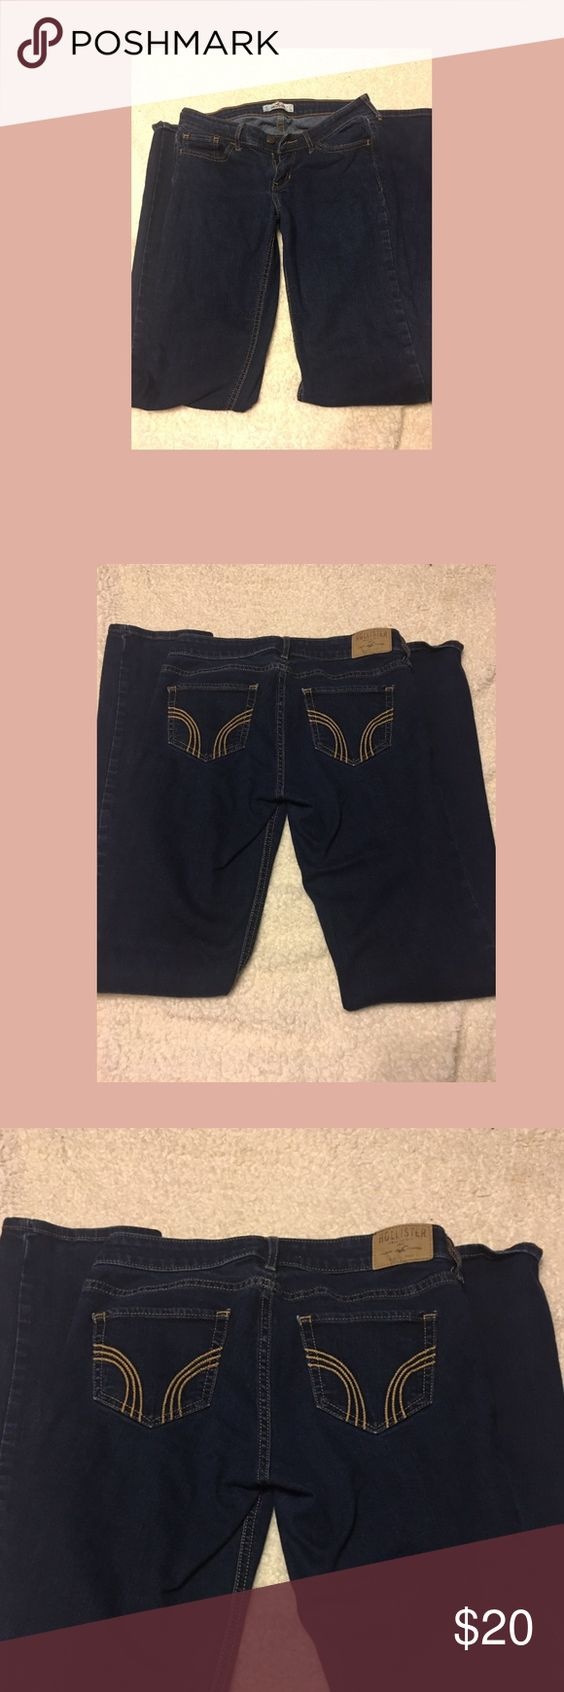 Jeans Size 5L hollister jeans. Dark blue straight leg jeans. Only worn 2-3 times so basically new. Hollister Jeans Straight Leg